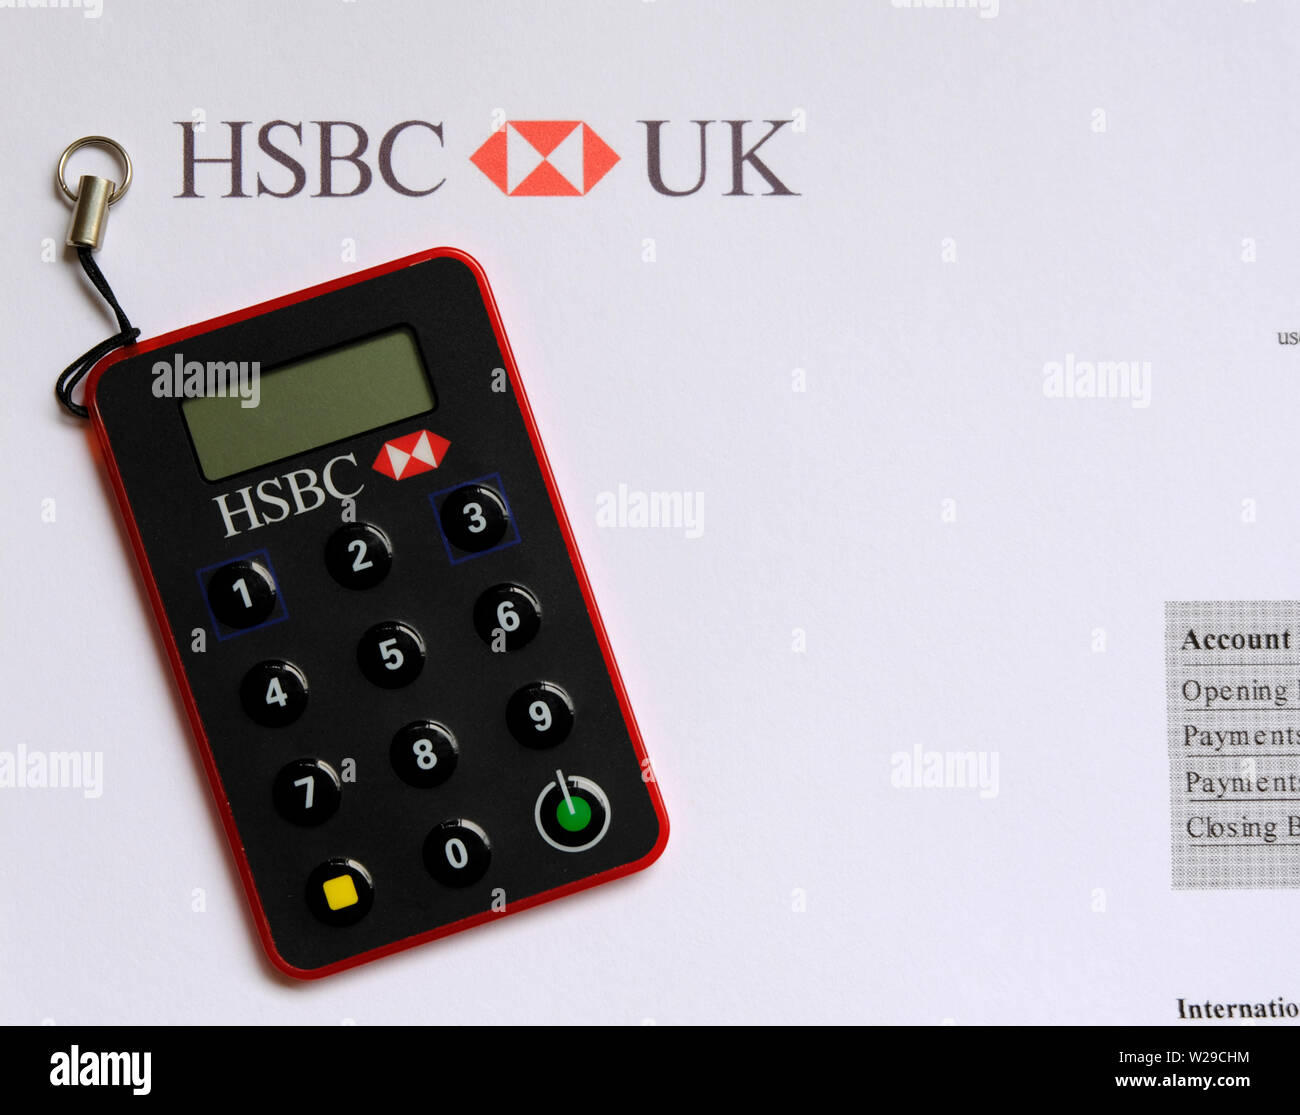 Hsbc Online Stock Photos & Hsbc Online Stock Images - Alamy